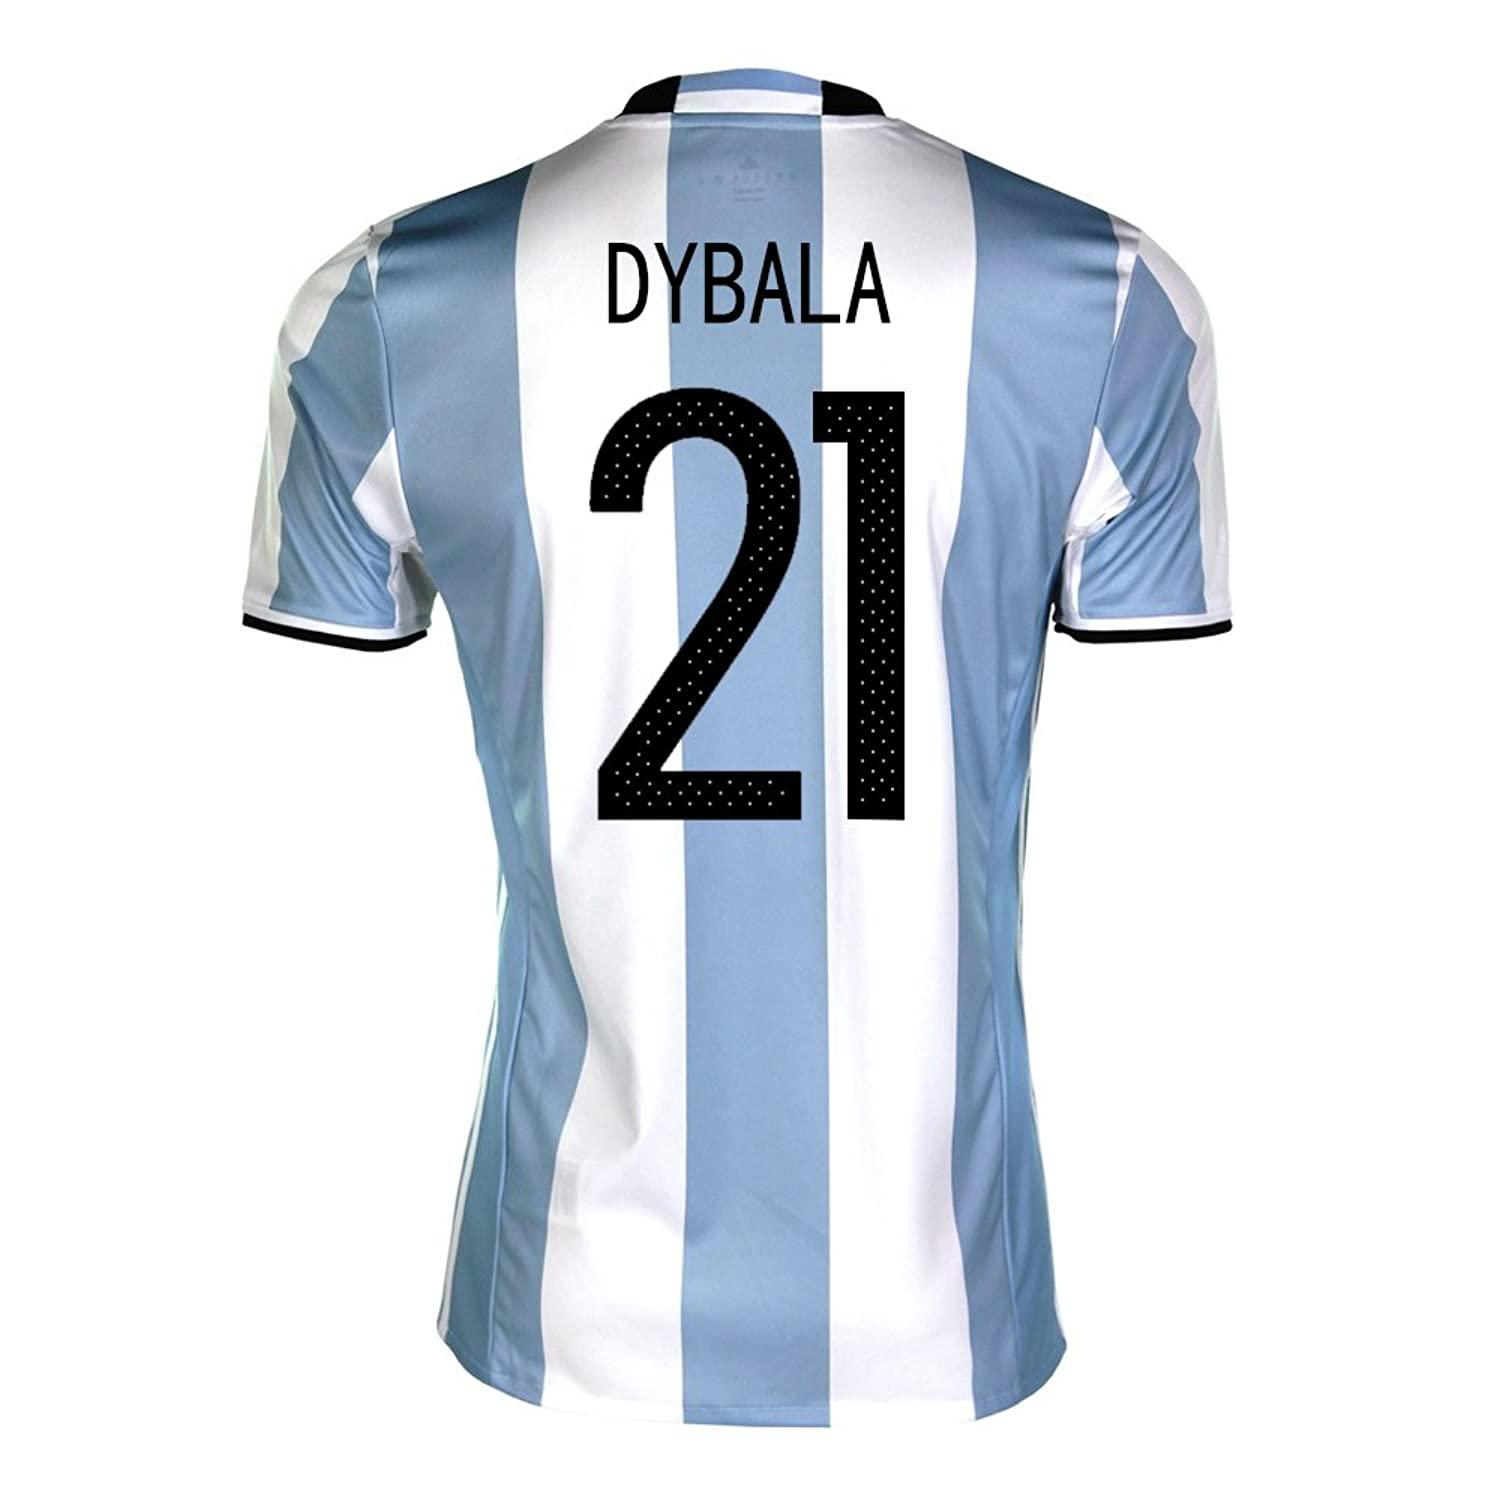 outlet store a3792 8aee9 85%OFF Dybala #19 Argentina Home Soccer Jersey Copa America ...